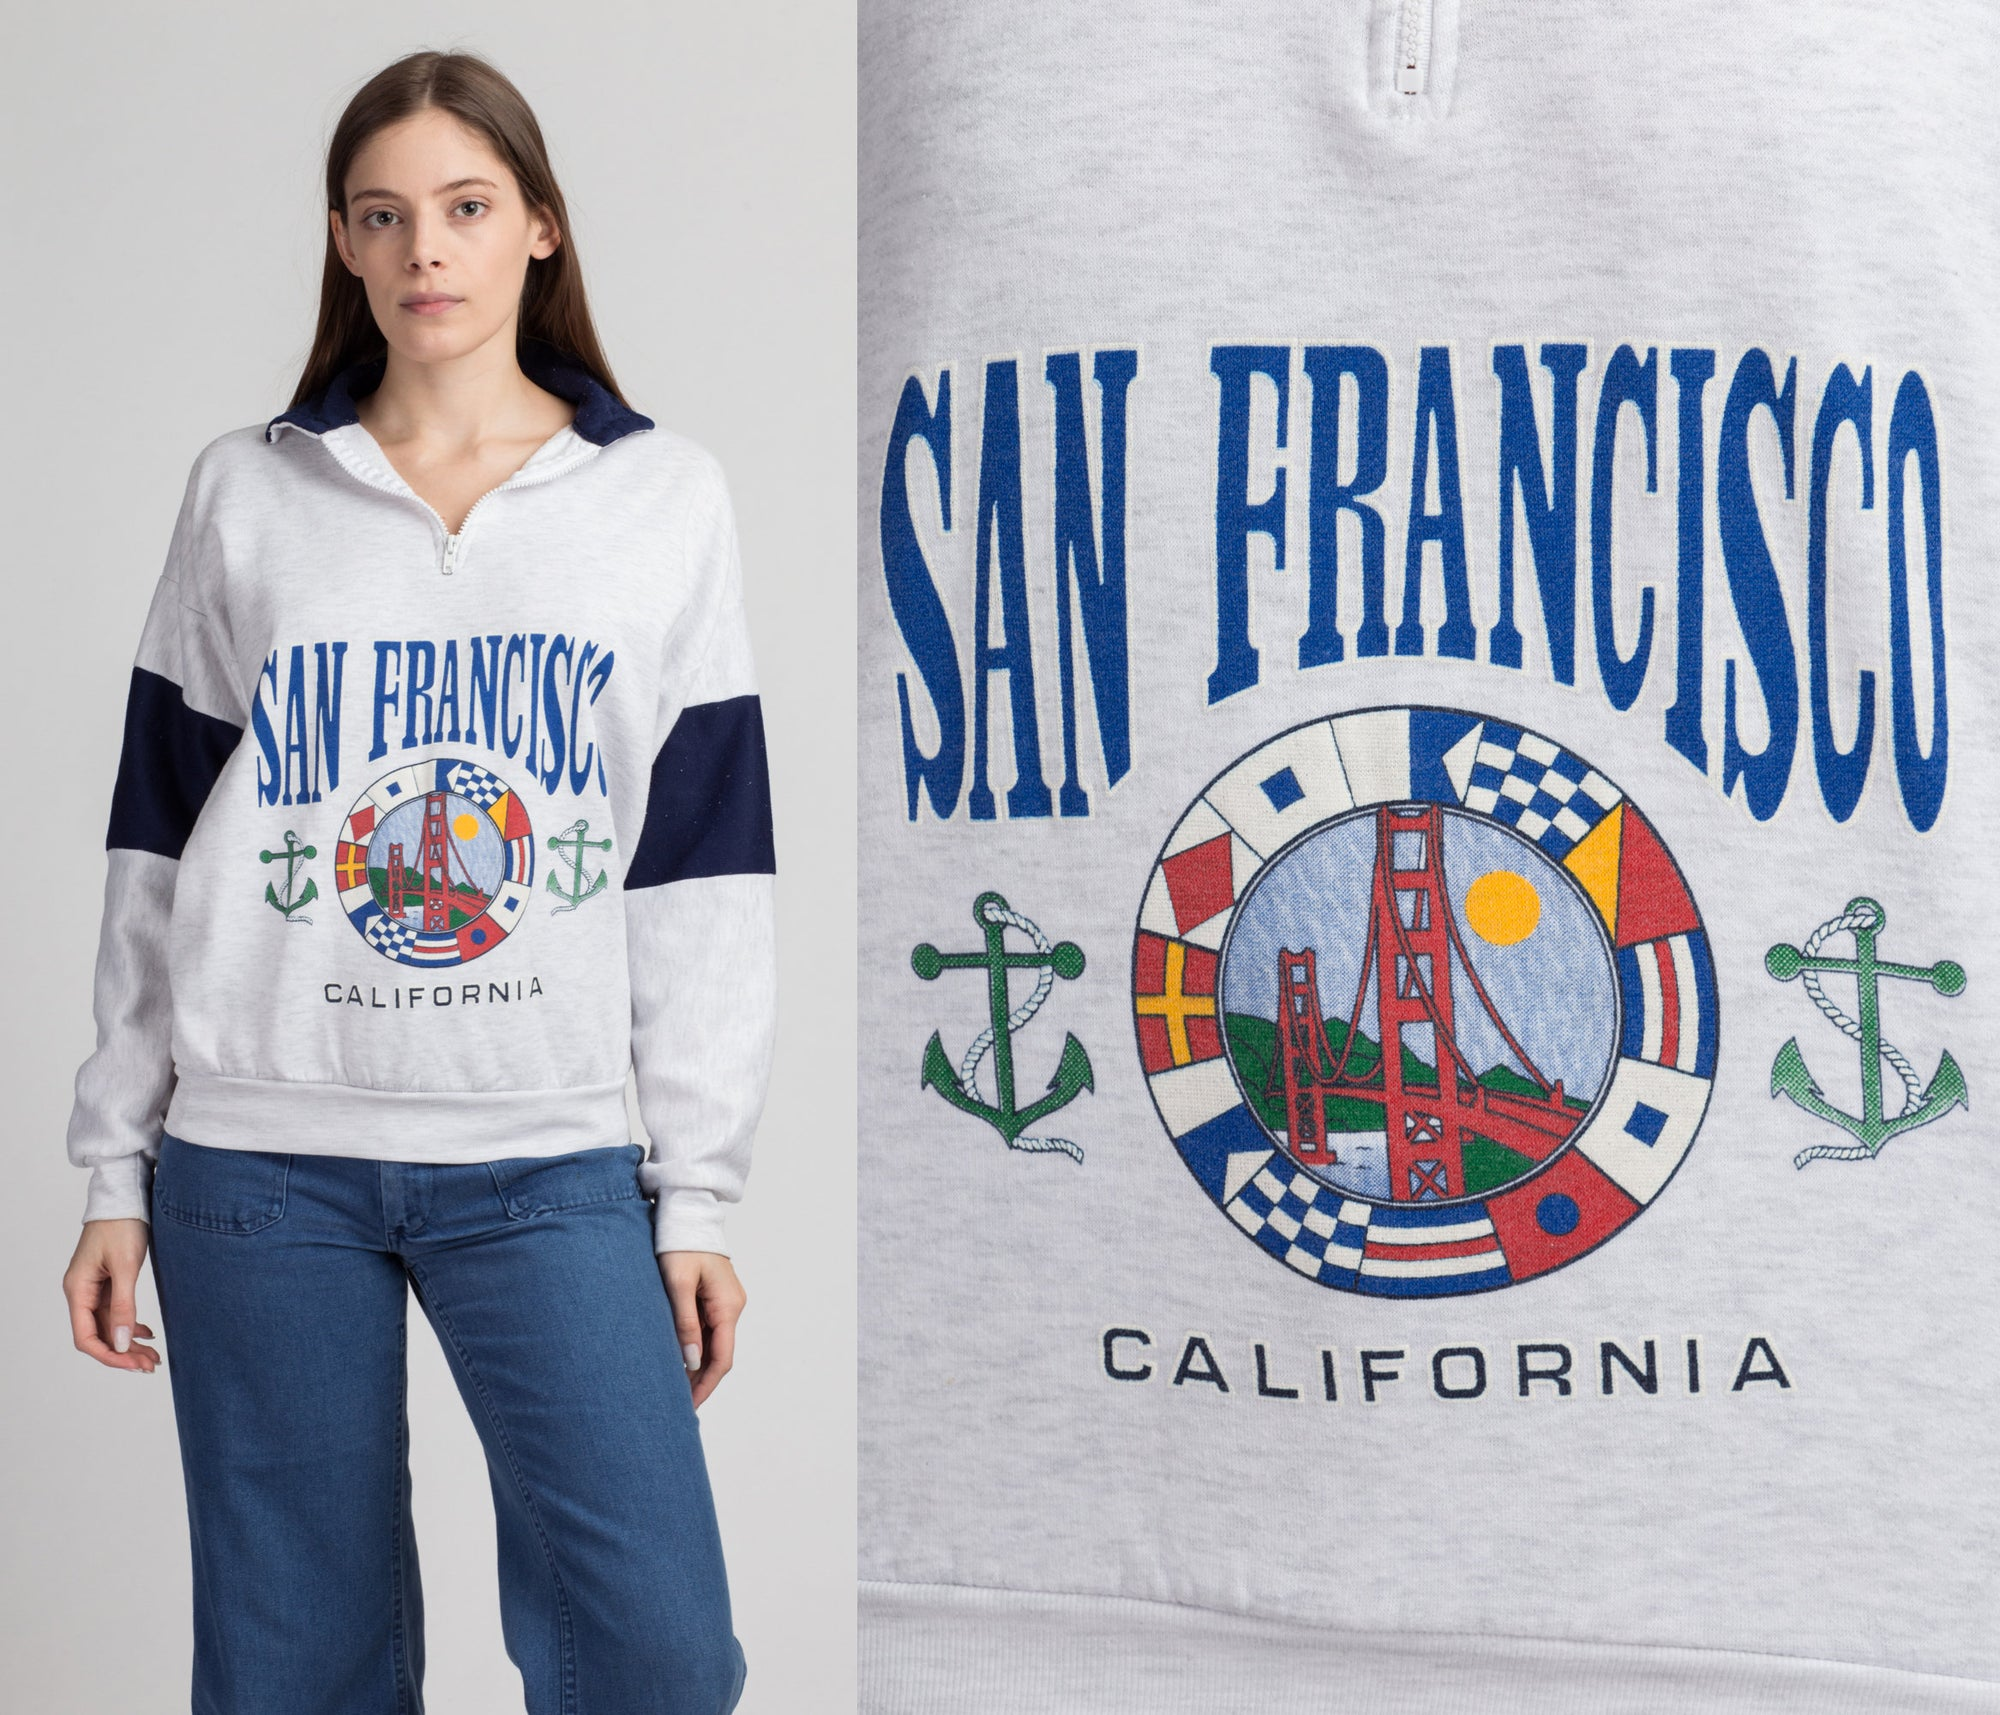 80s 90s San Francisco Sweatshirt - Men's Medium, Women's Large | Vintage Collared Half Zip Tourist Pullover